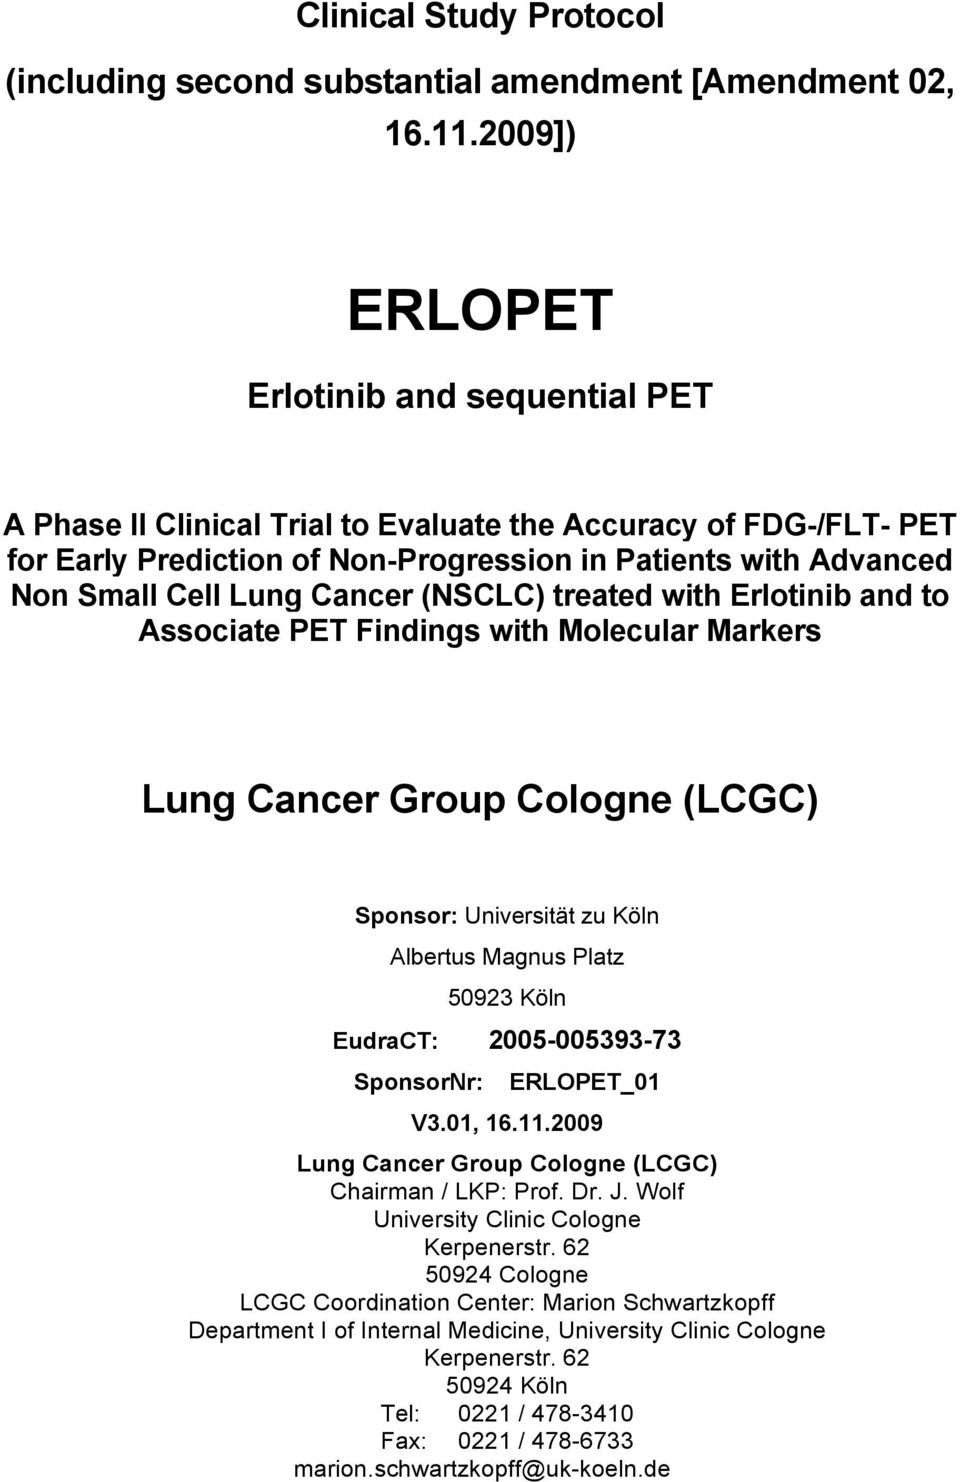 Cancer (NSCLC) treated with Erlotinib and to Associate PET Findings with Molecular Markers Lung Cancer Group Cologne (LCGC) Sponsor: Universität zu Köln Albertus Magnus Platz 50923 Köln EudraCT: